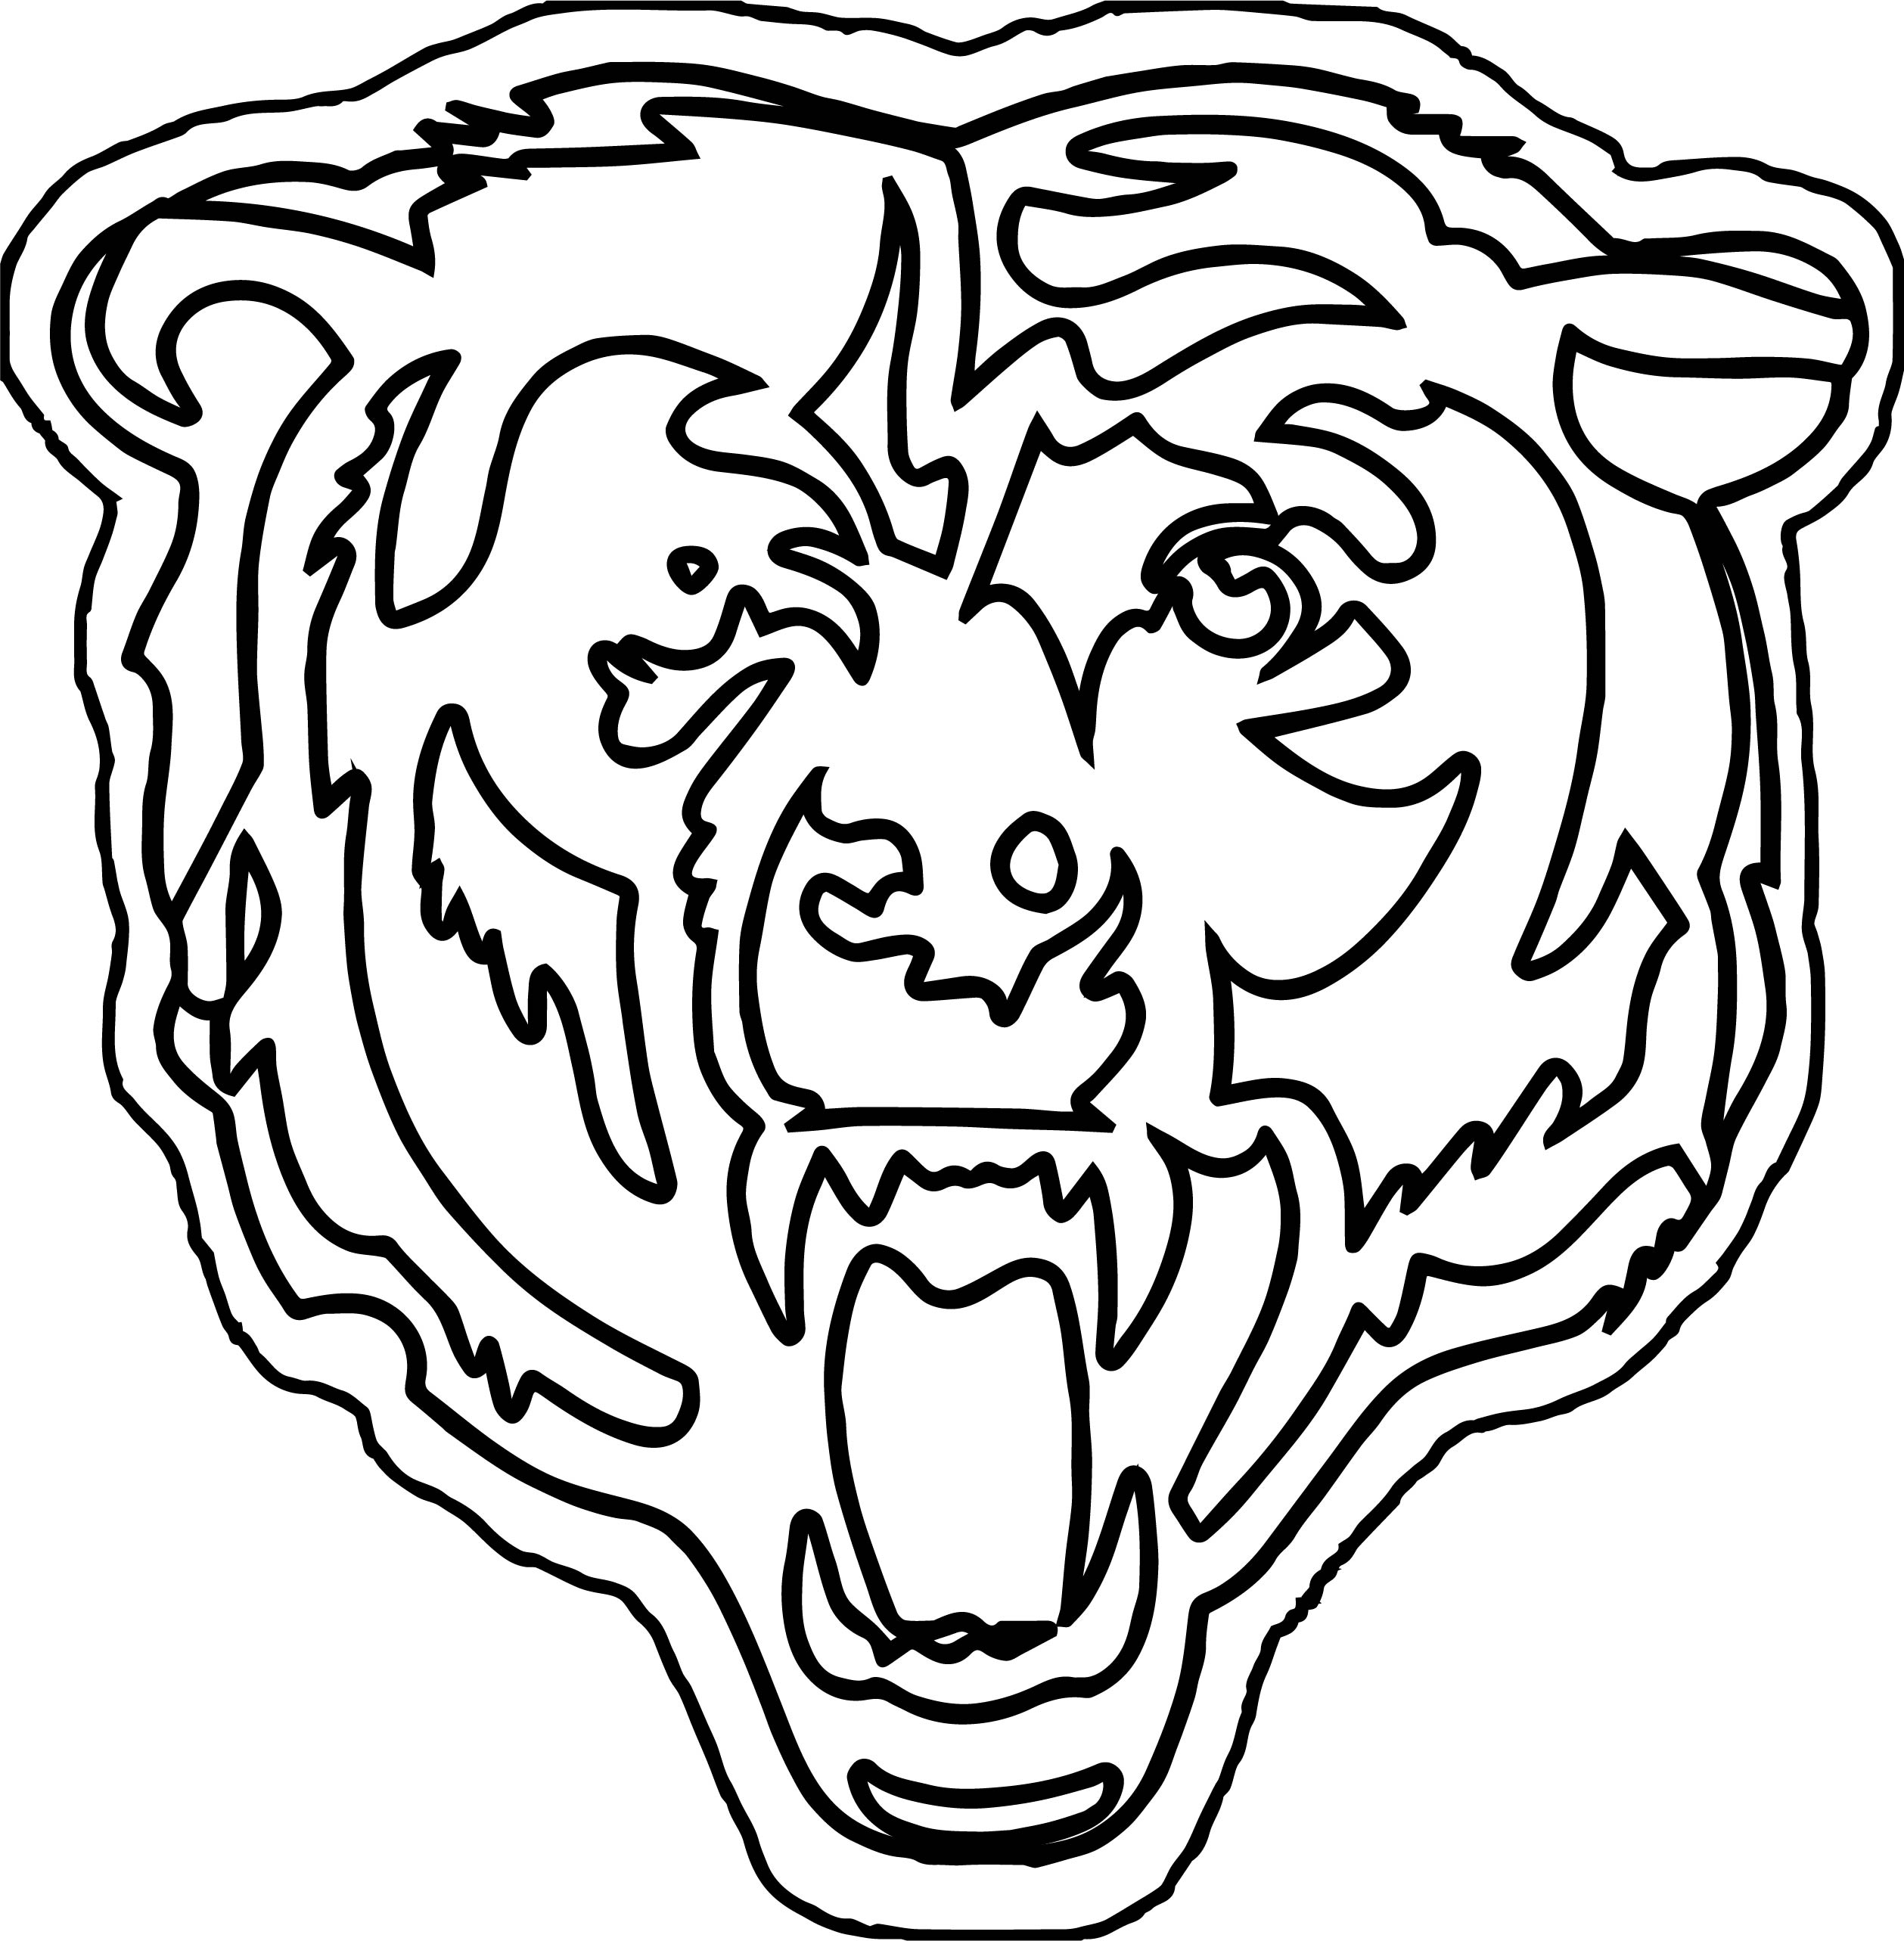 Bear Outline Coloring Pages